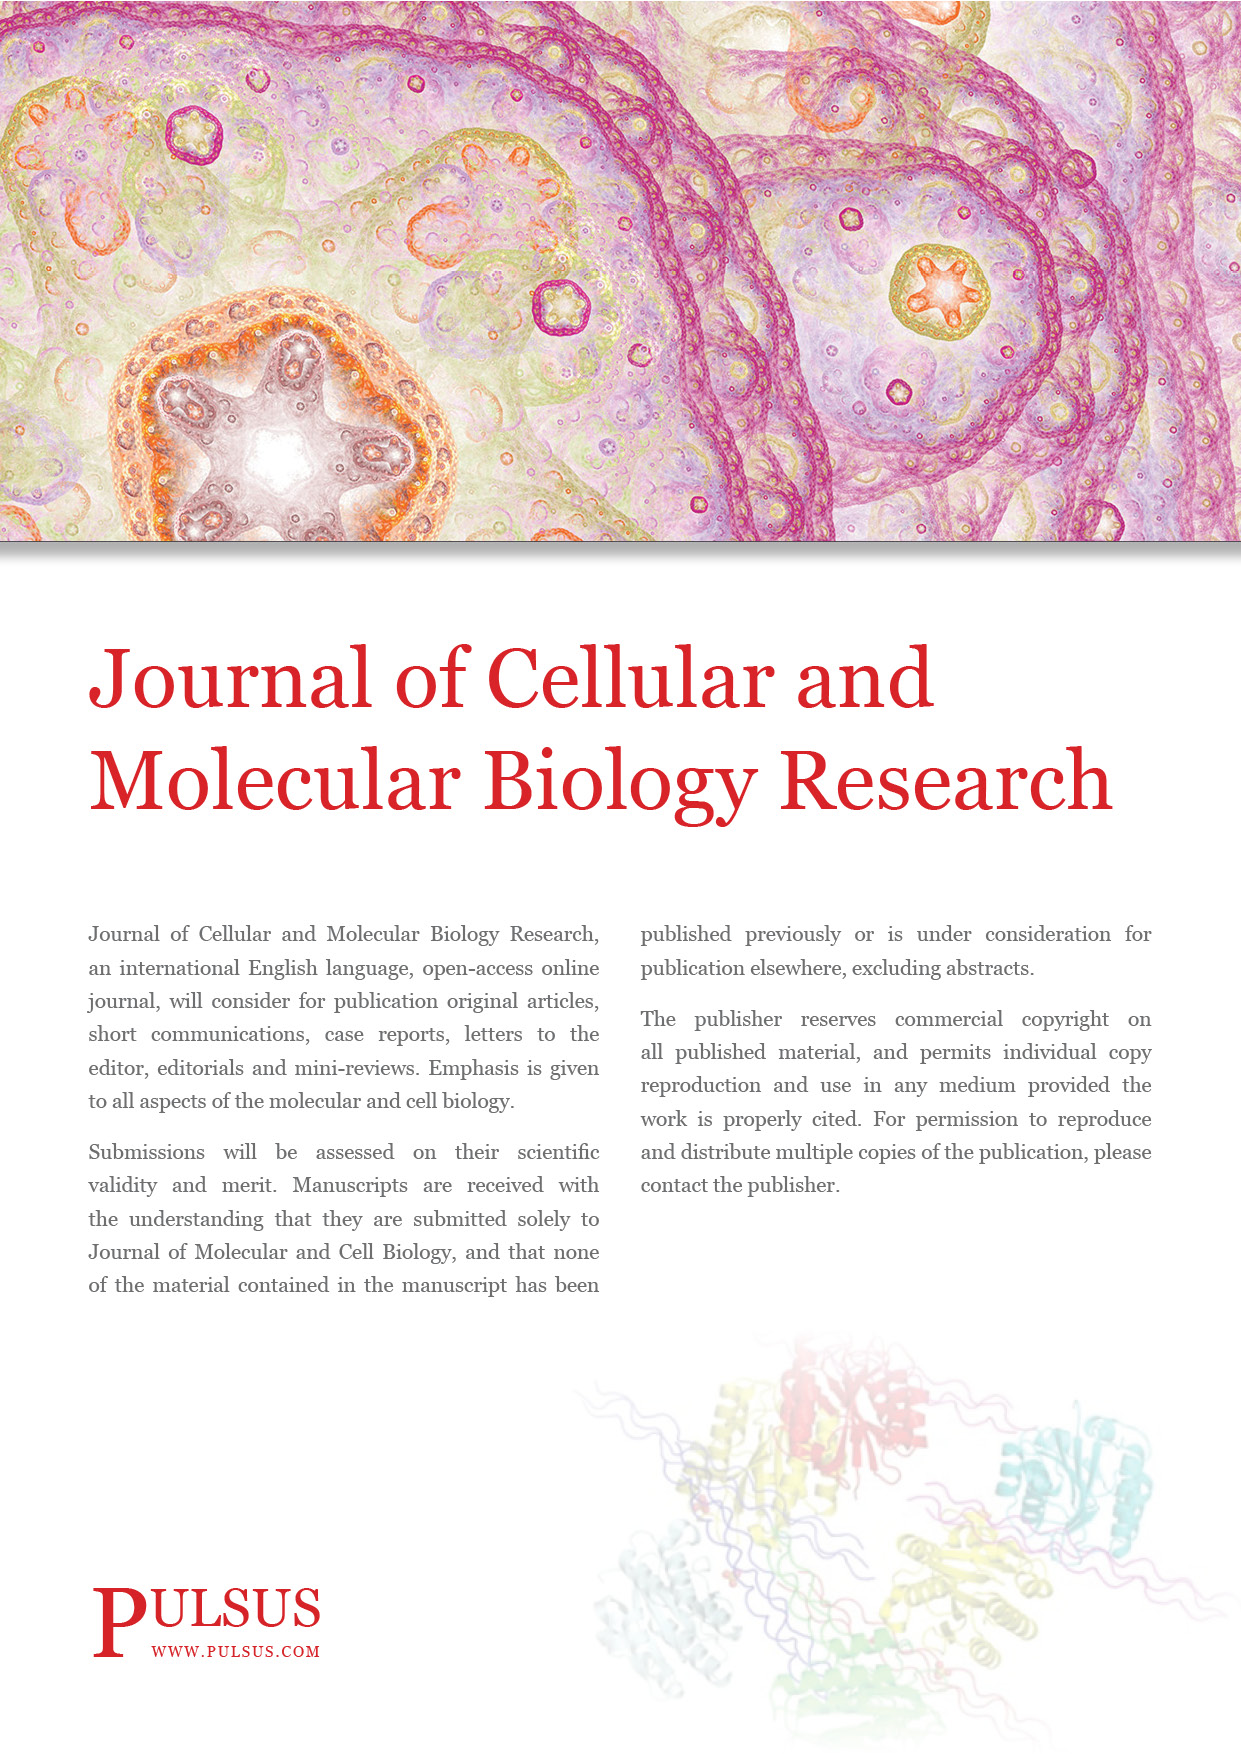 Journal of Cellular and Molecular Biology Research